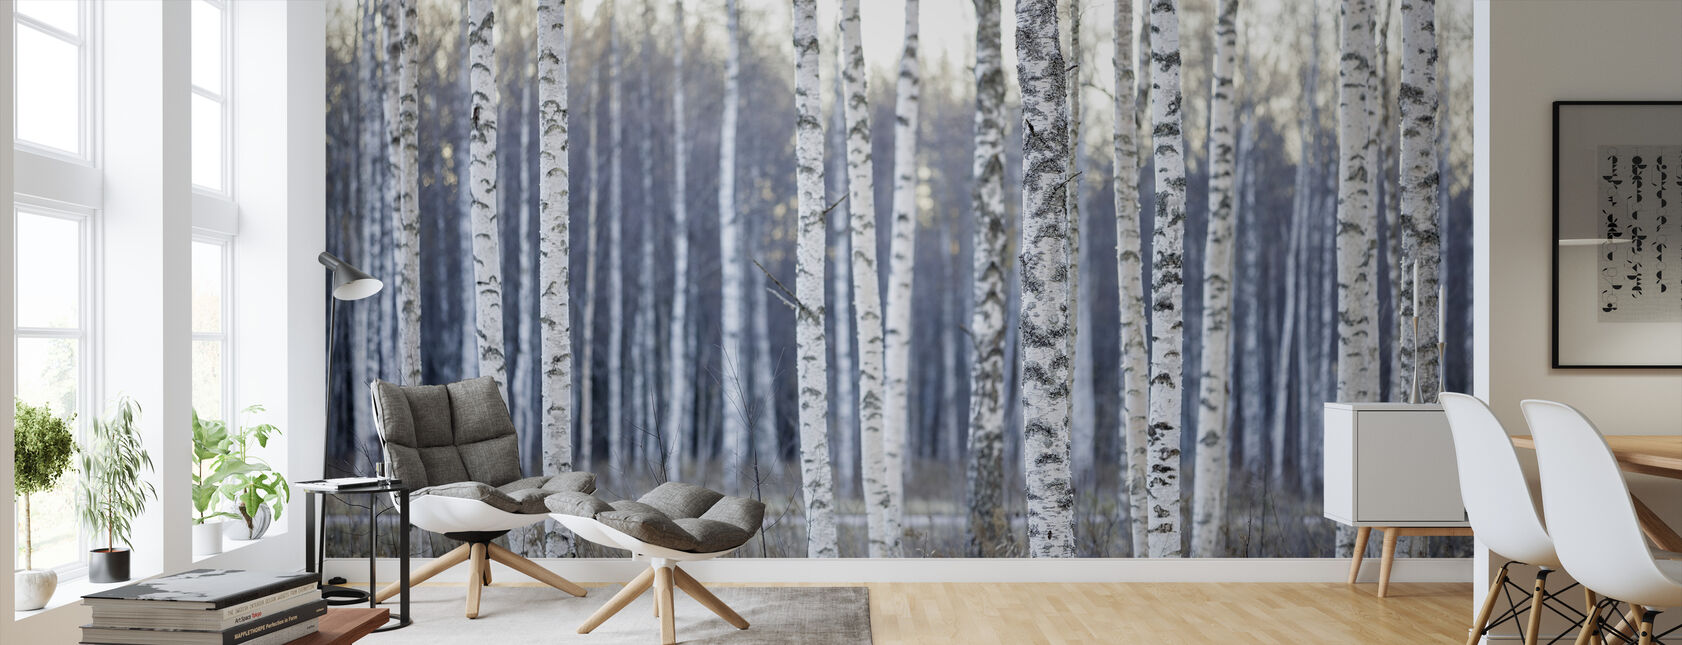 Birch Tree - Wallpaper - Living Room